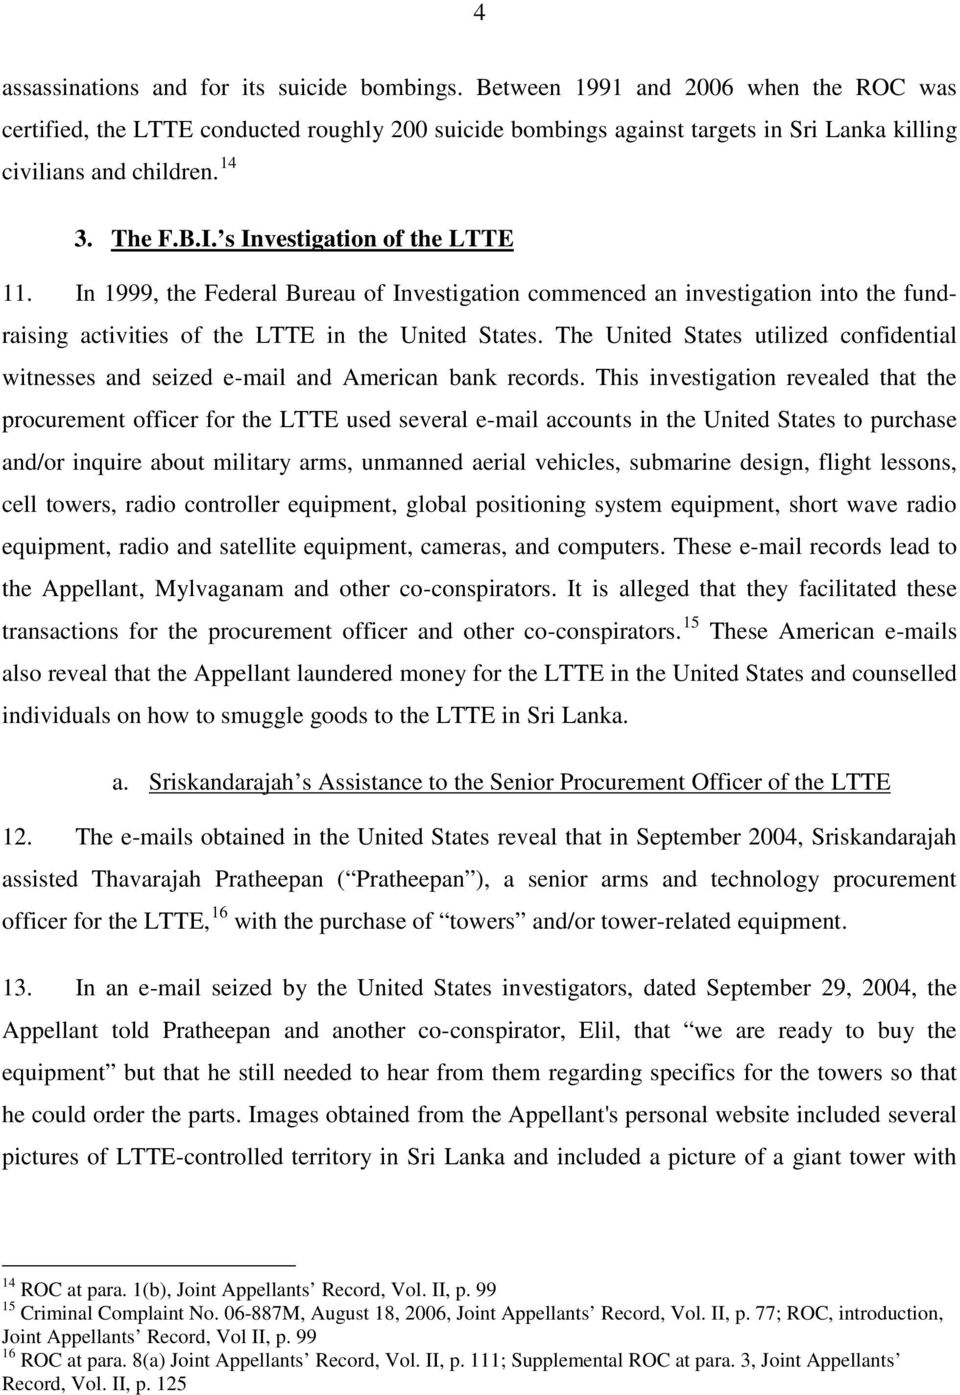 s Investigation of the LTTE 11. In 1999, the Federal Bureau of Investigation commenced an investigation into the fundraising activities of the LTTE in the United States.